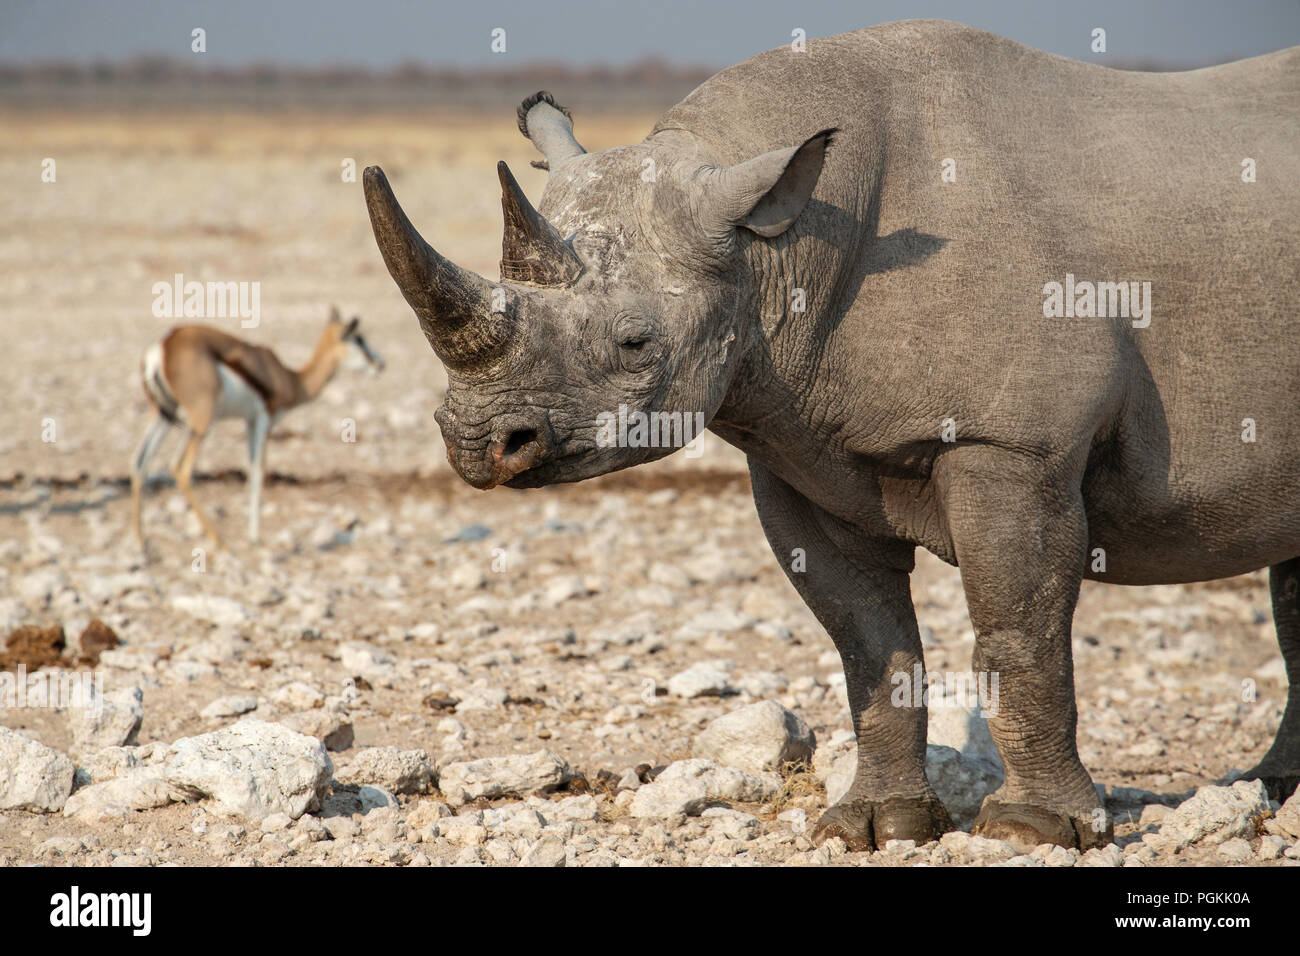 Head and forequarters of Black rhino or hook-lipped rhinoceros - Diceros bicornis - near a waterhole in Etosha, Namibia. - Stock Image